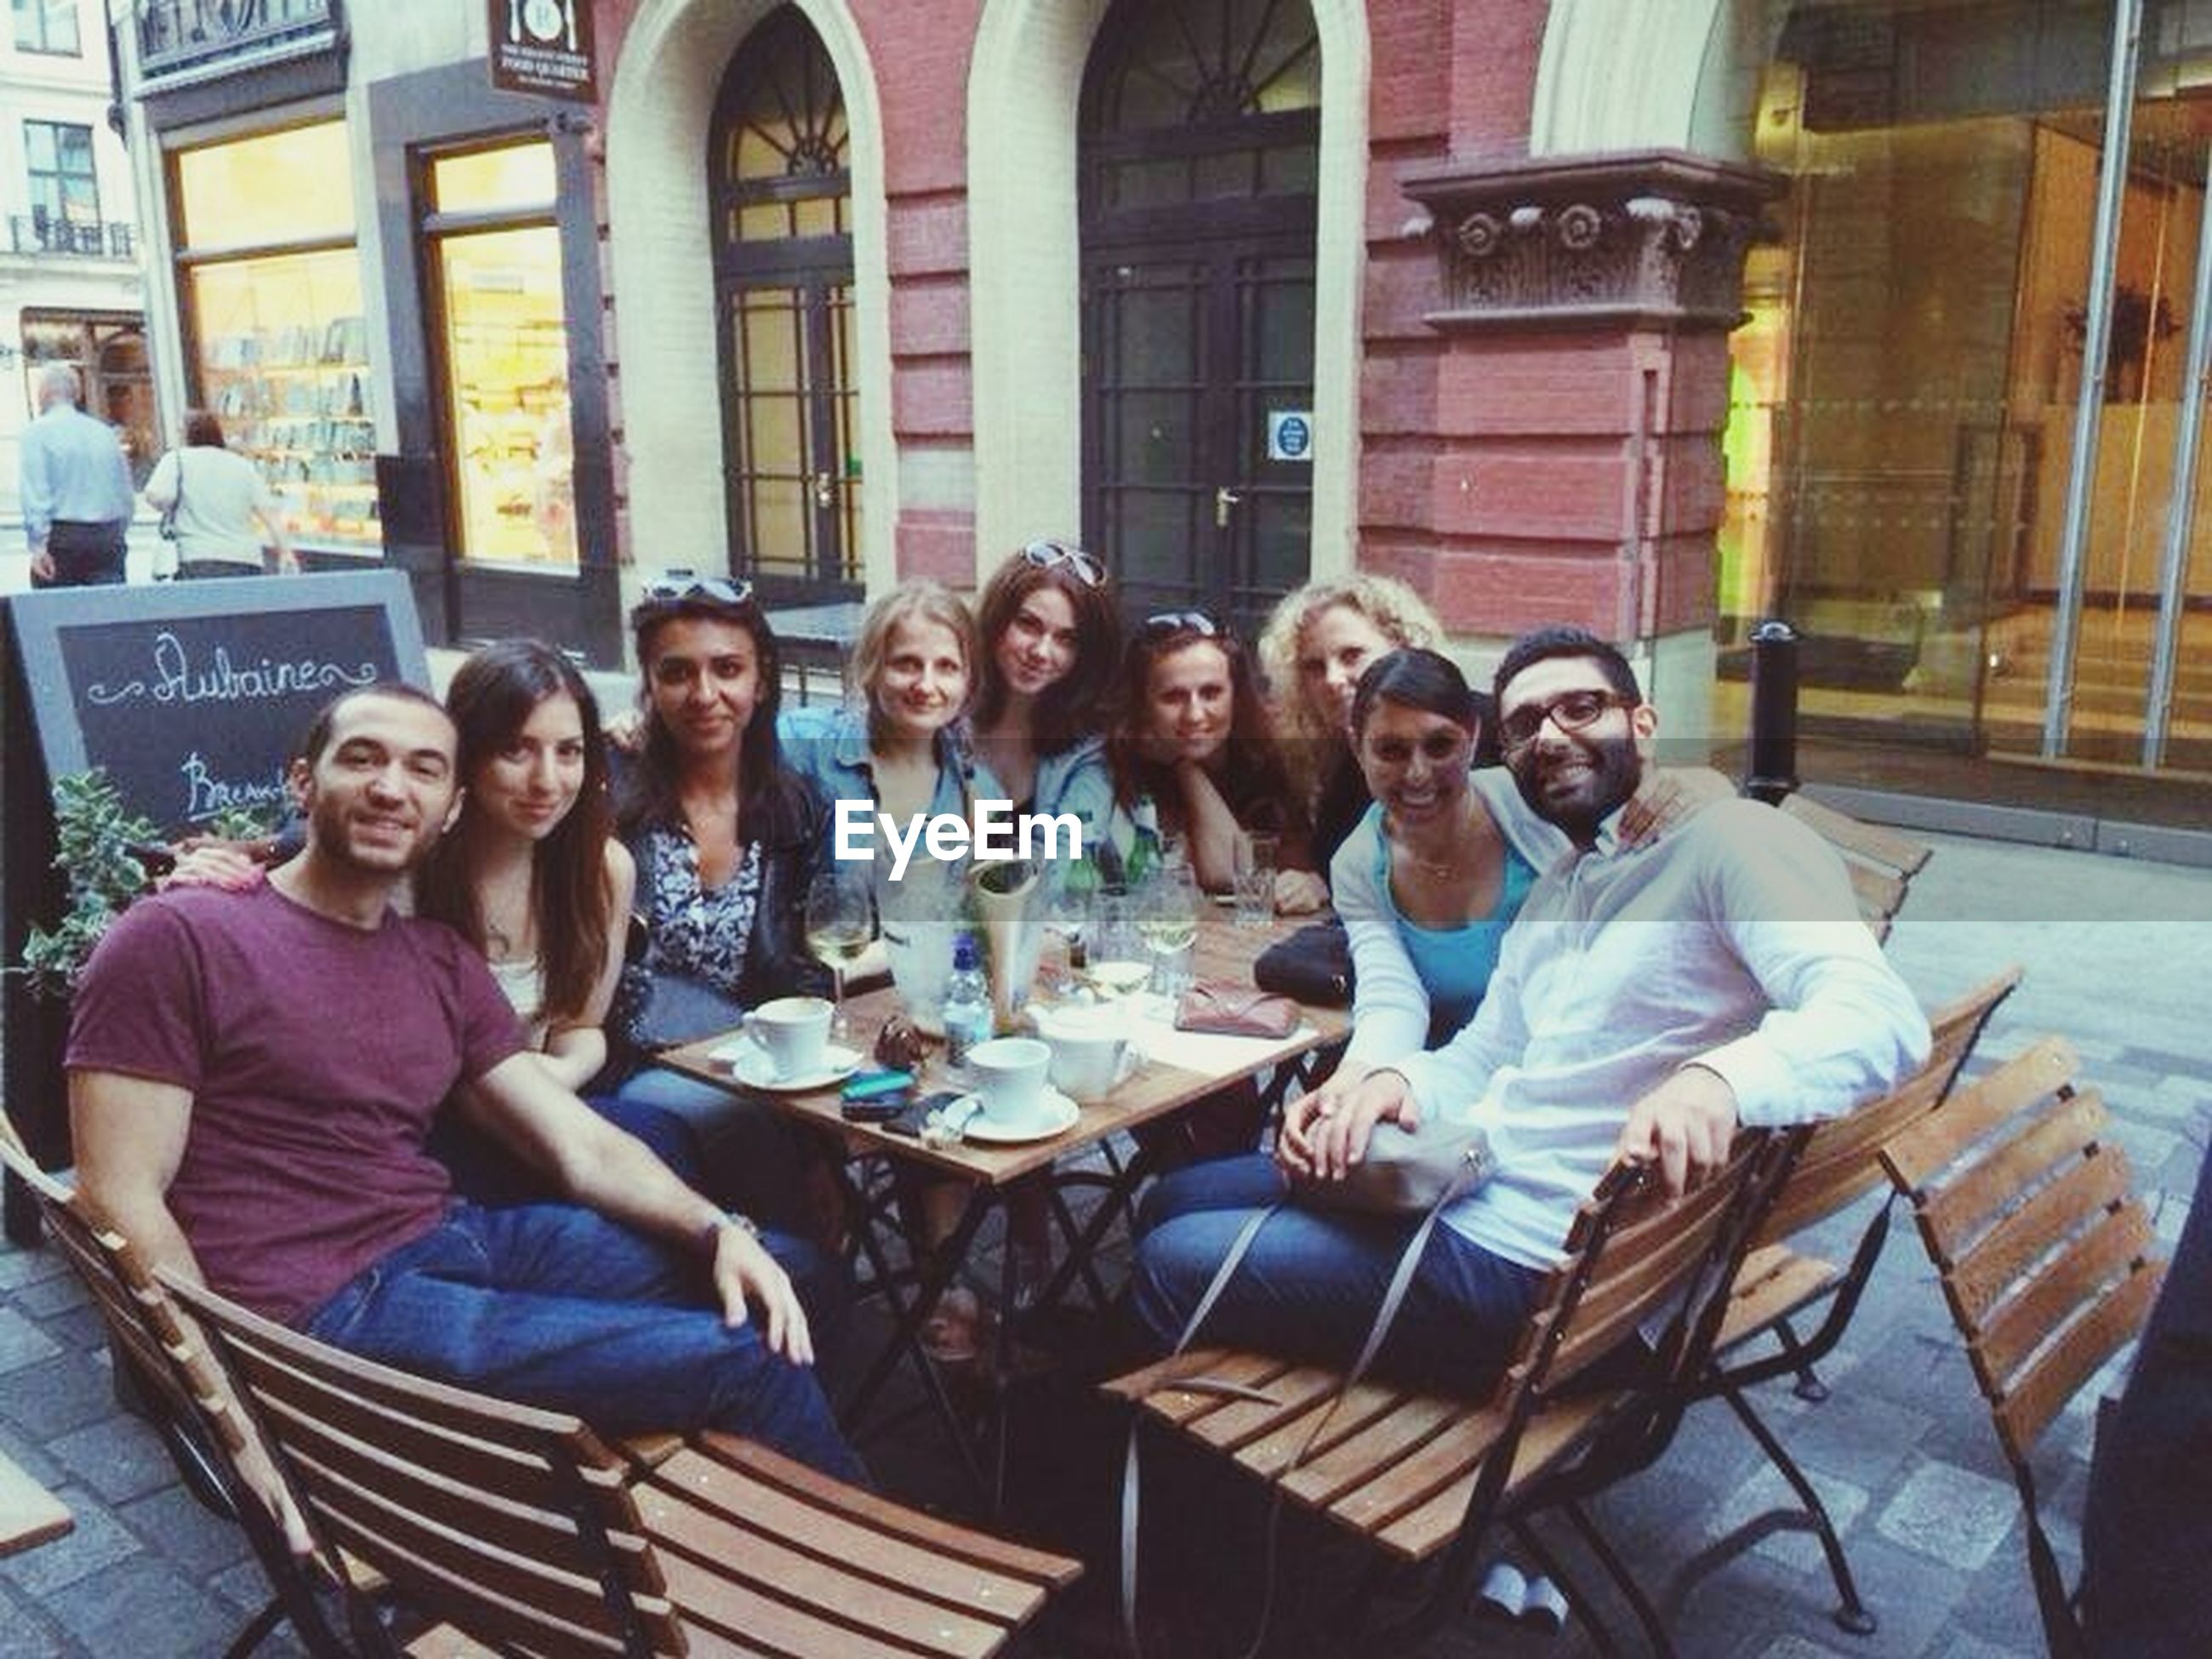 lifestyles, togetherness, leisure activity, casual clothing, person, bonding, young adult, love, friendship, sitting, happiness, building exterior, smiling, architecture, built structure, looking at camera, young women, portrait